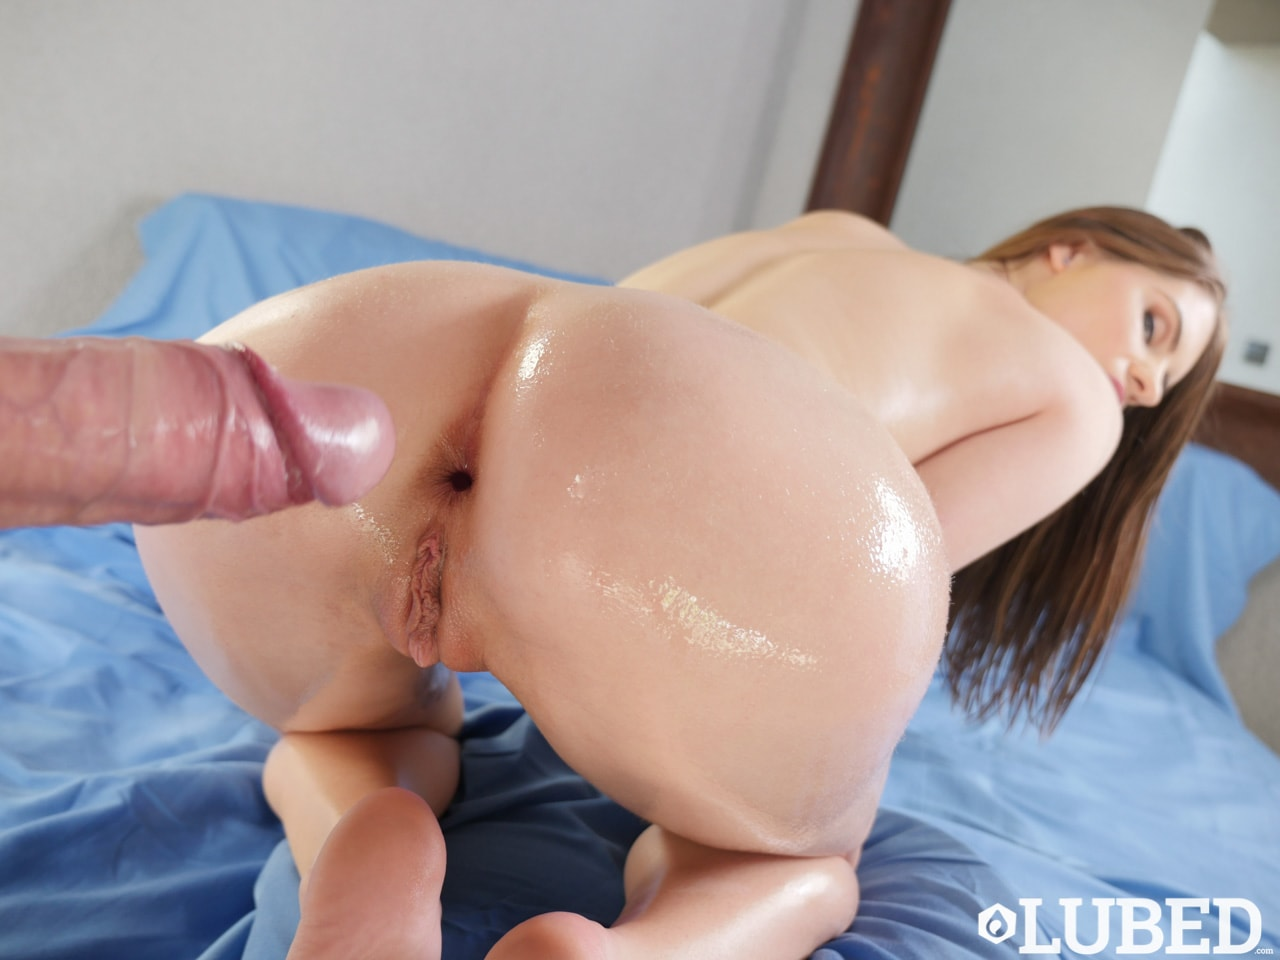 Anal Sex Without Lube